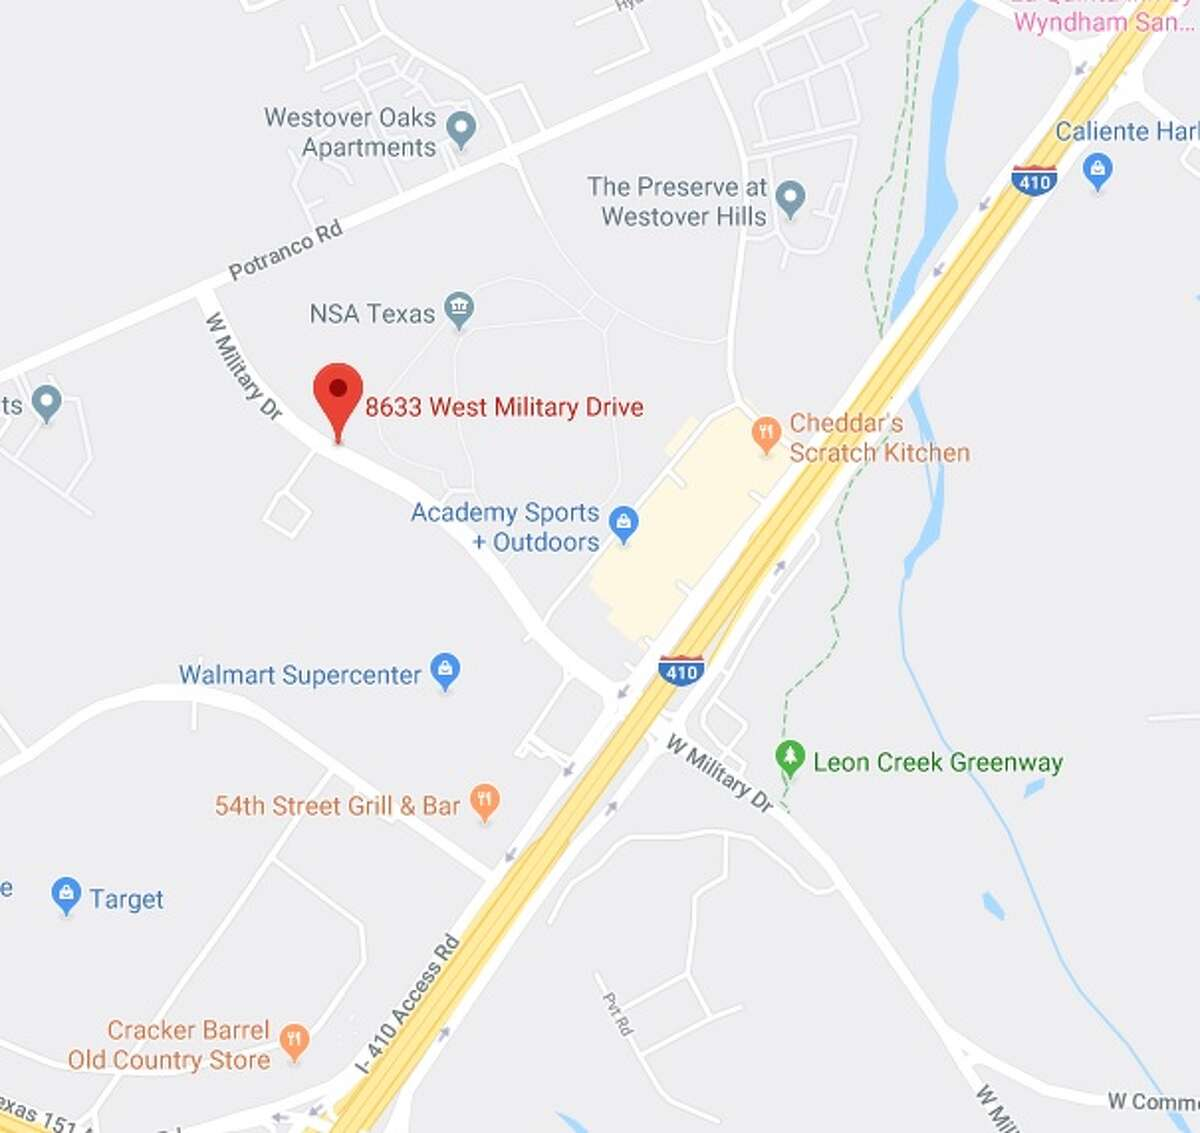 CPS Energy plans to close the southbound right turning lane from West Military Drive and Loop 410 Frontage Road from 9 a.m. to 3 p.m. Wednesday. The map shows the area that will be affected by the closure.